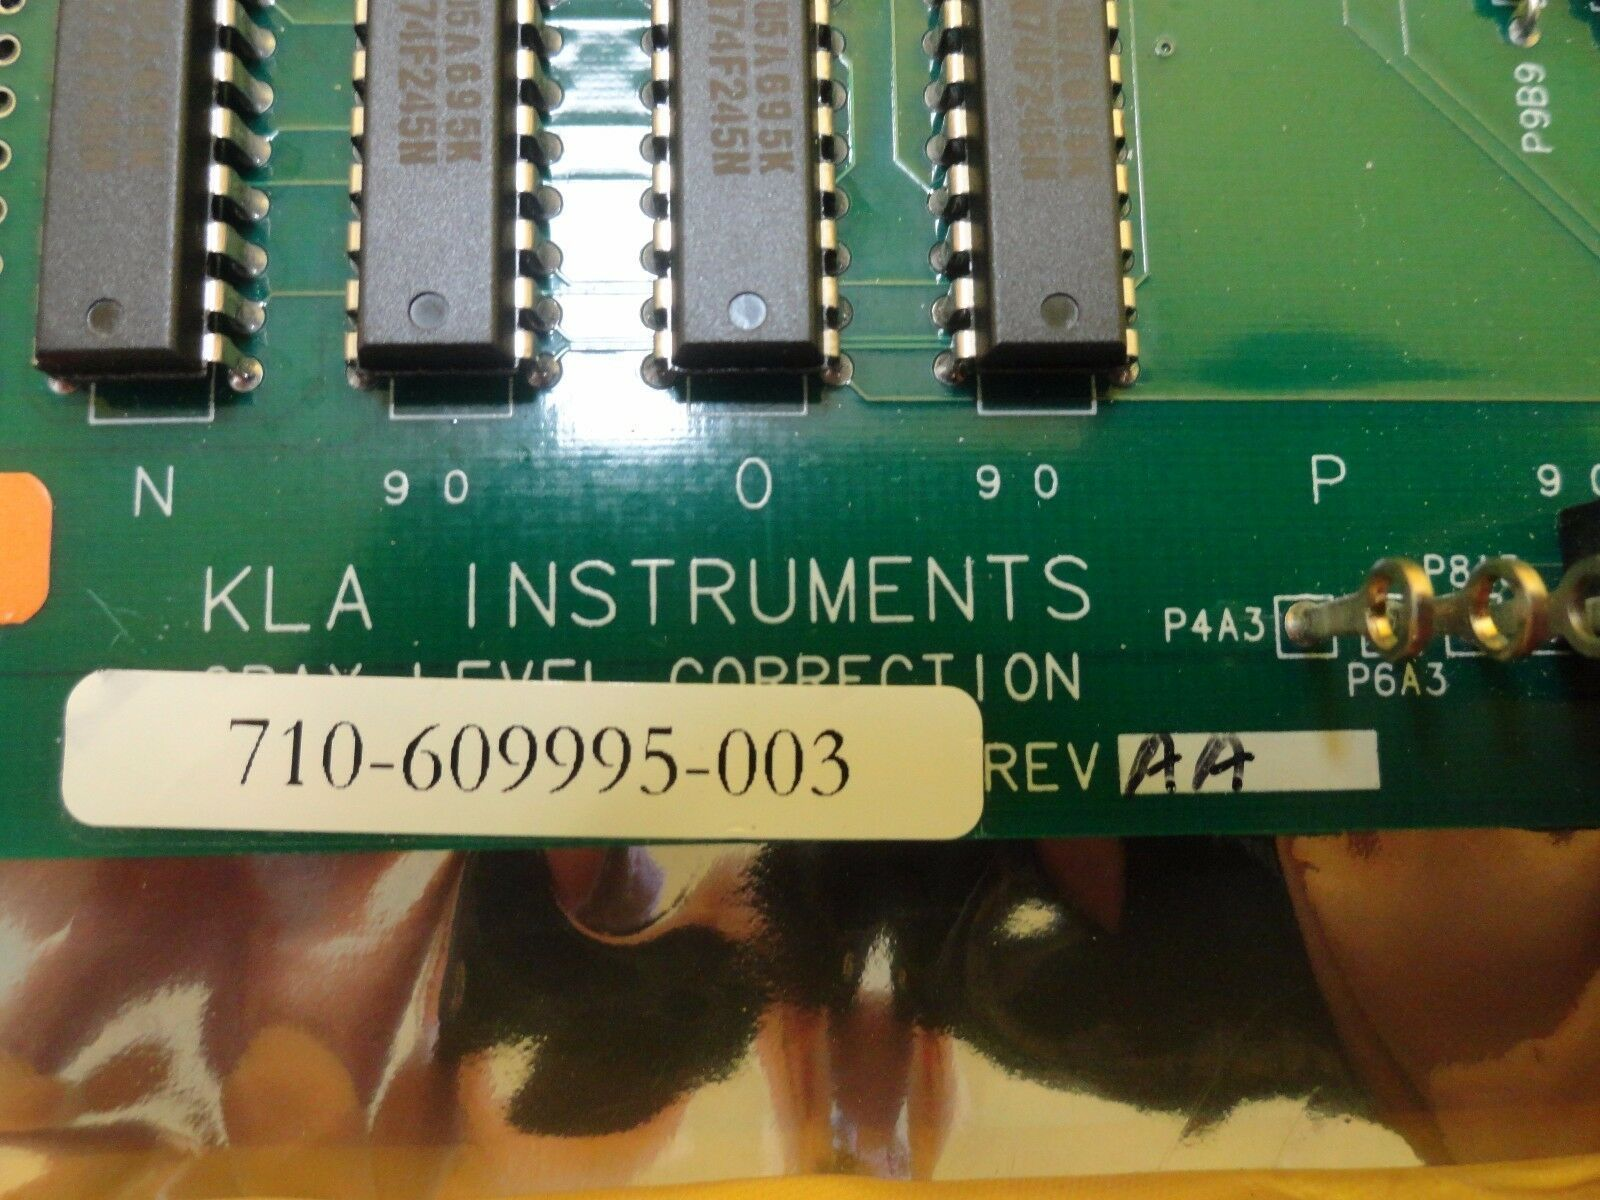 KLA Instruments 710-609995-003 Gray Level Correction PCB Card 073-609995-000 Use